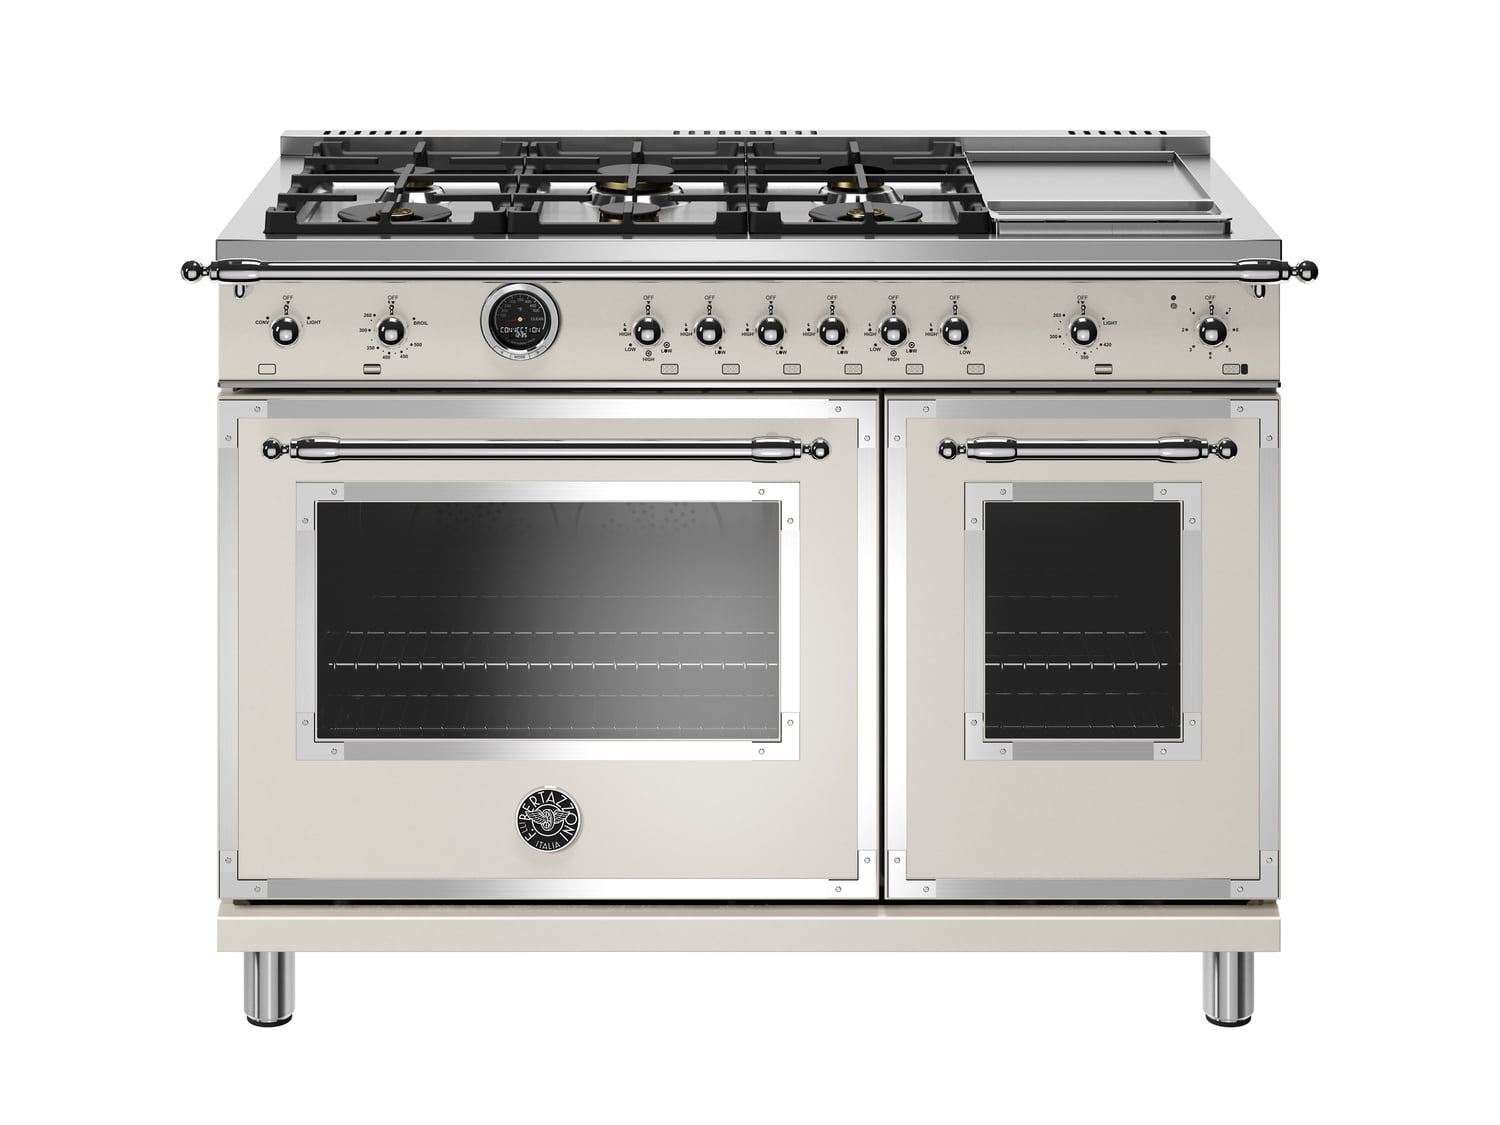 Load image into Gallery viewer, Bertazzoni HERT486GDFSAVT 48 Inch Dual Fuel Range, 6 Brass Burners And Griddle, Electric Self Clean Oven Avorio